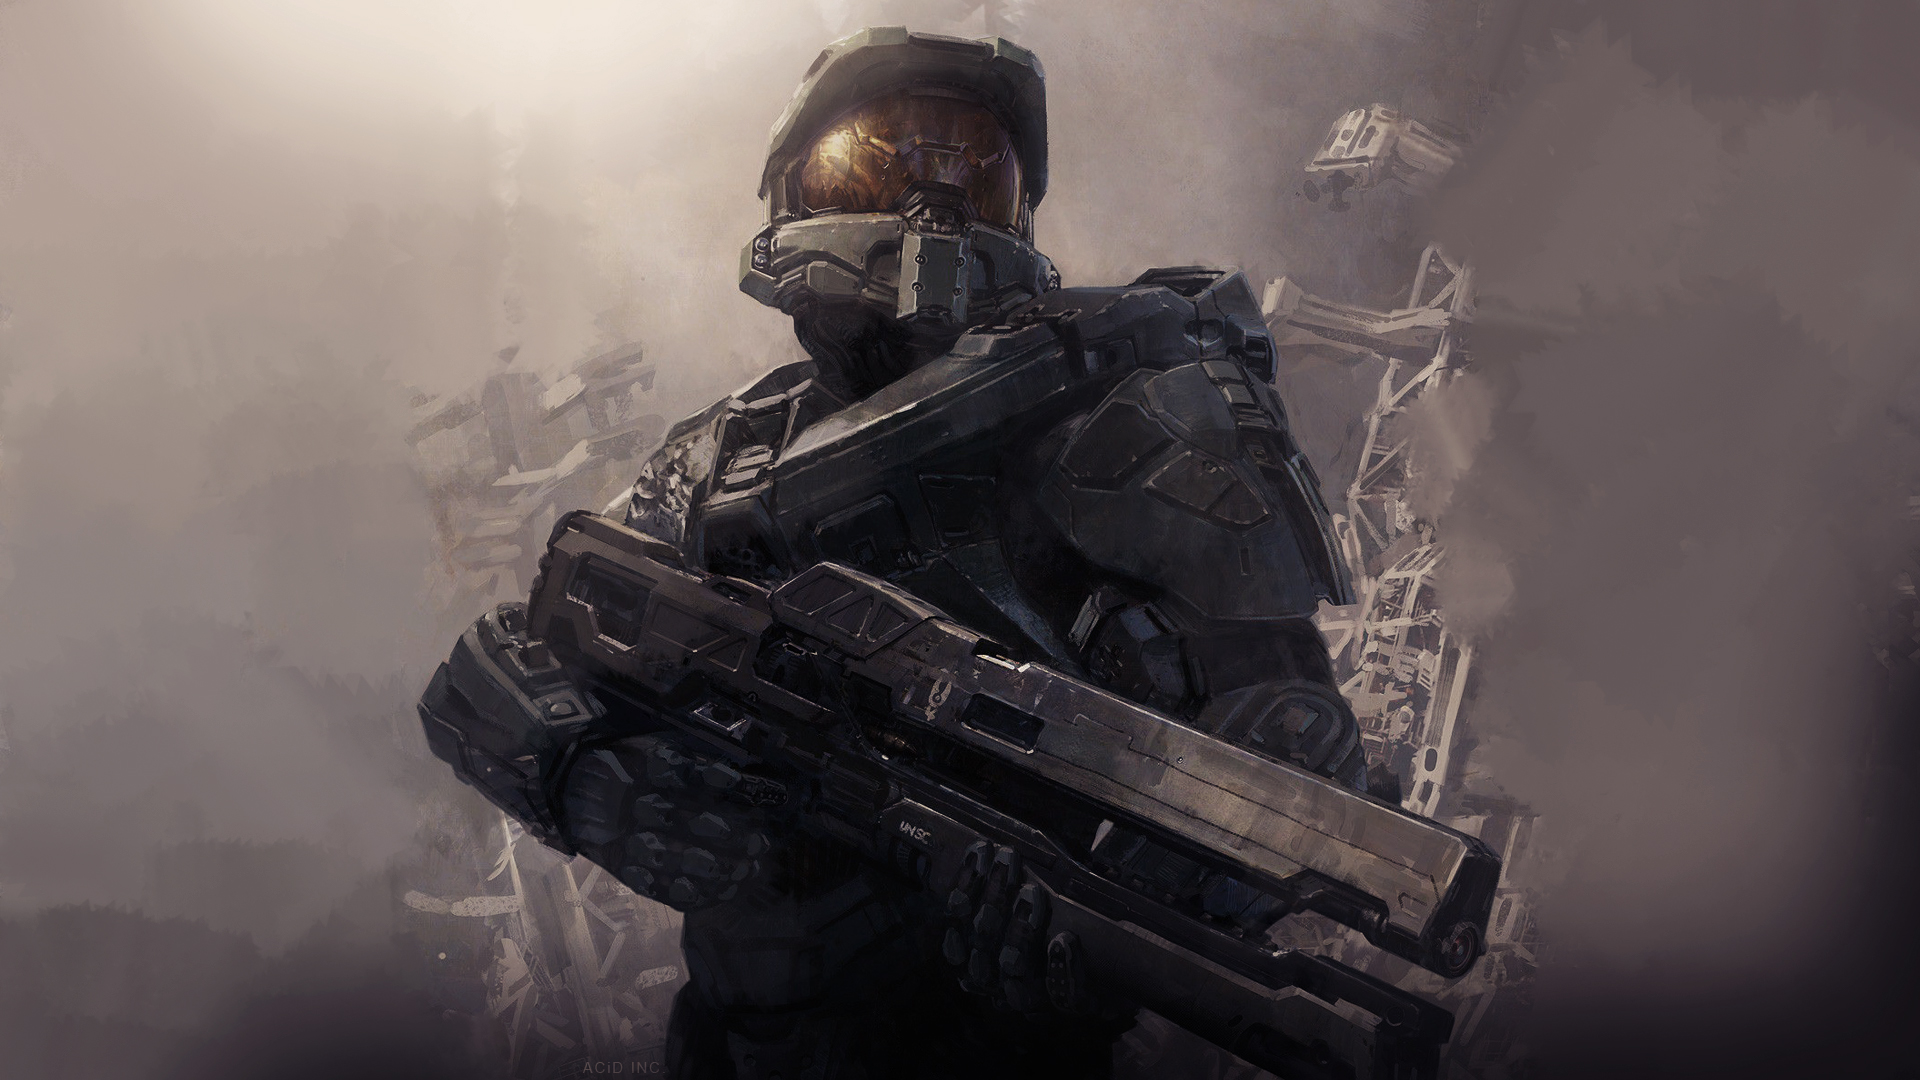 Halo 4 Wallpapers Pictures Images